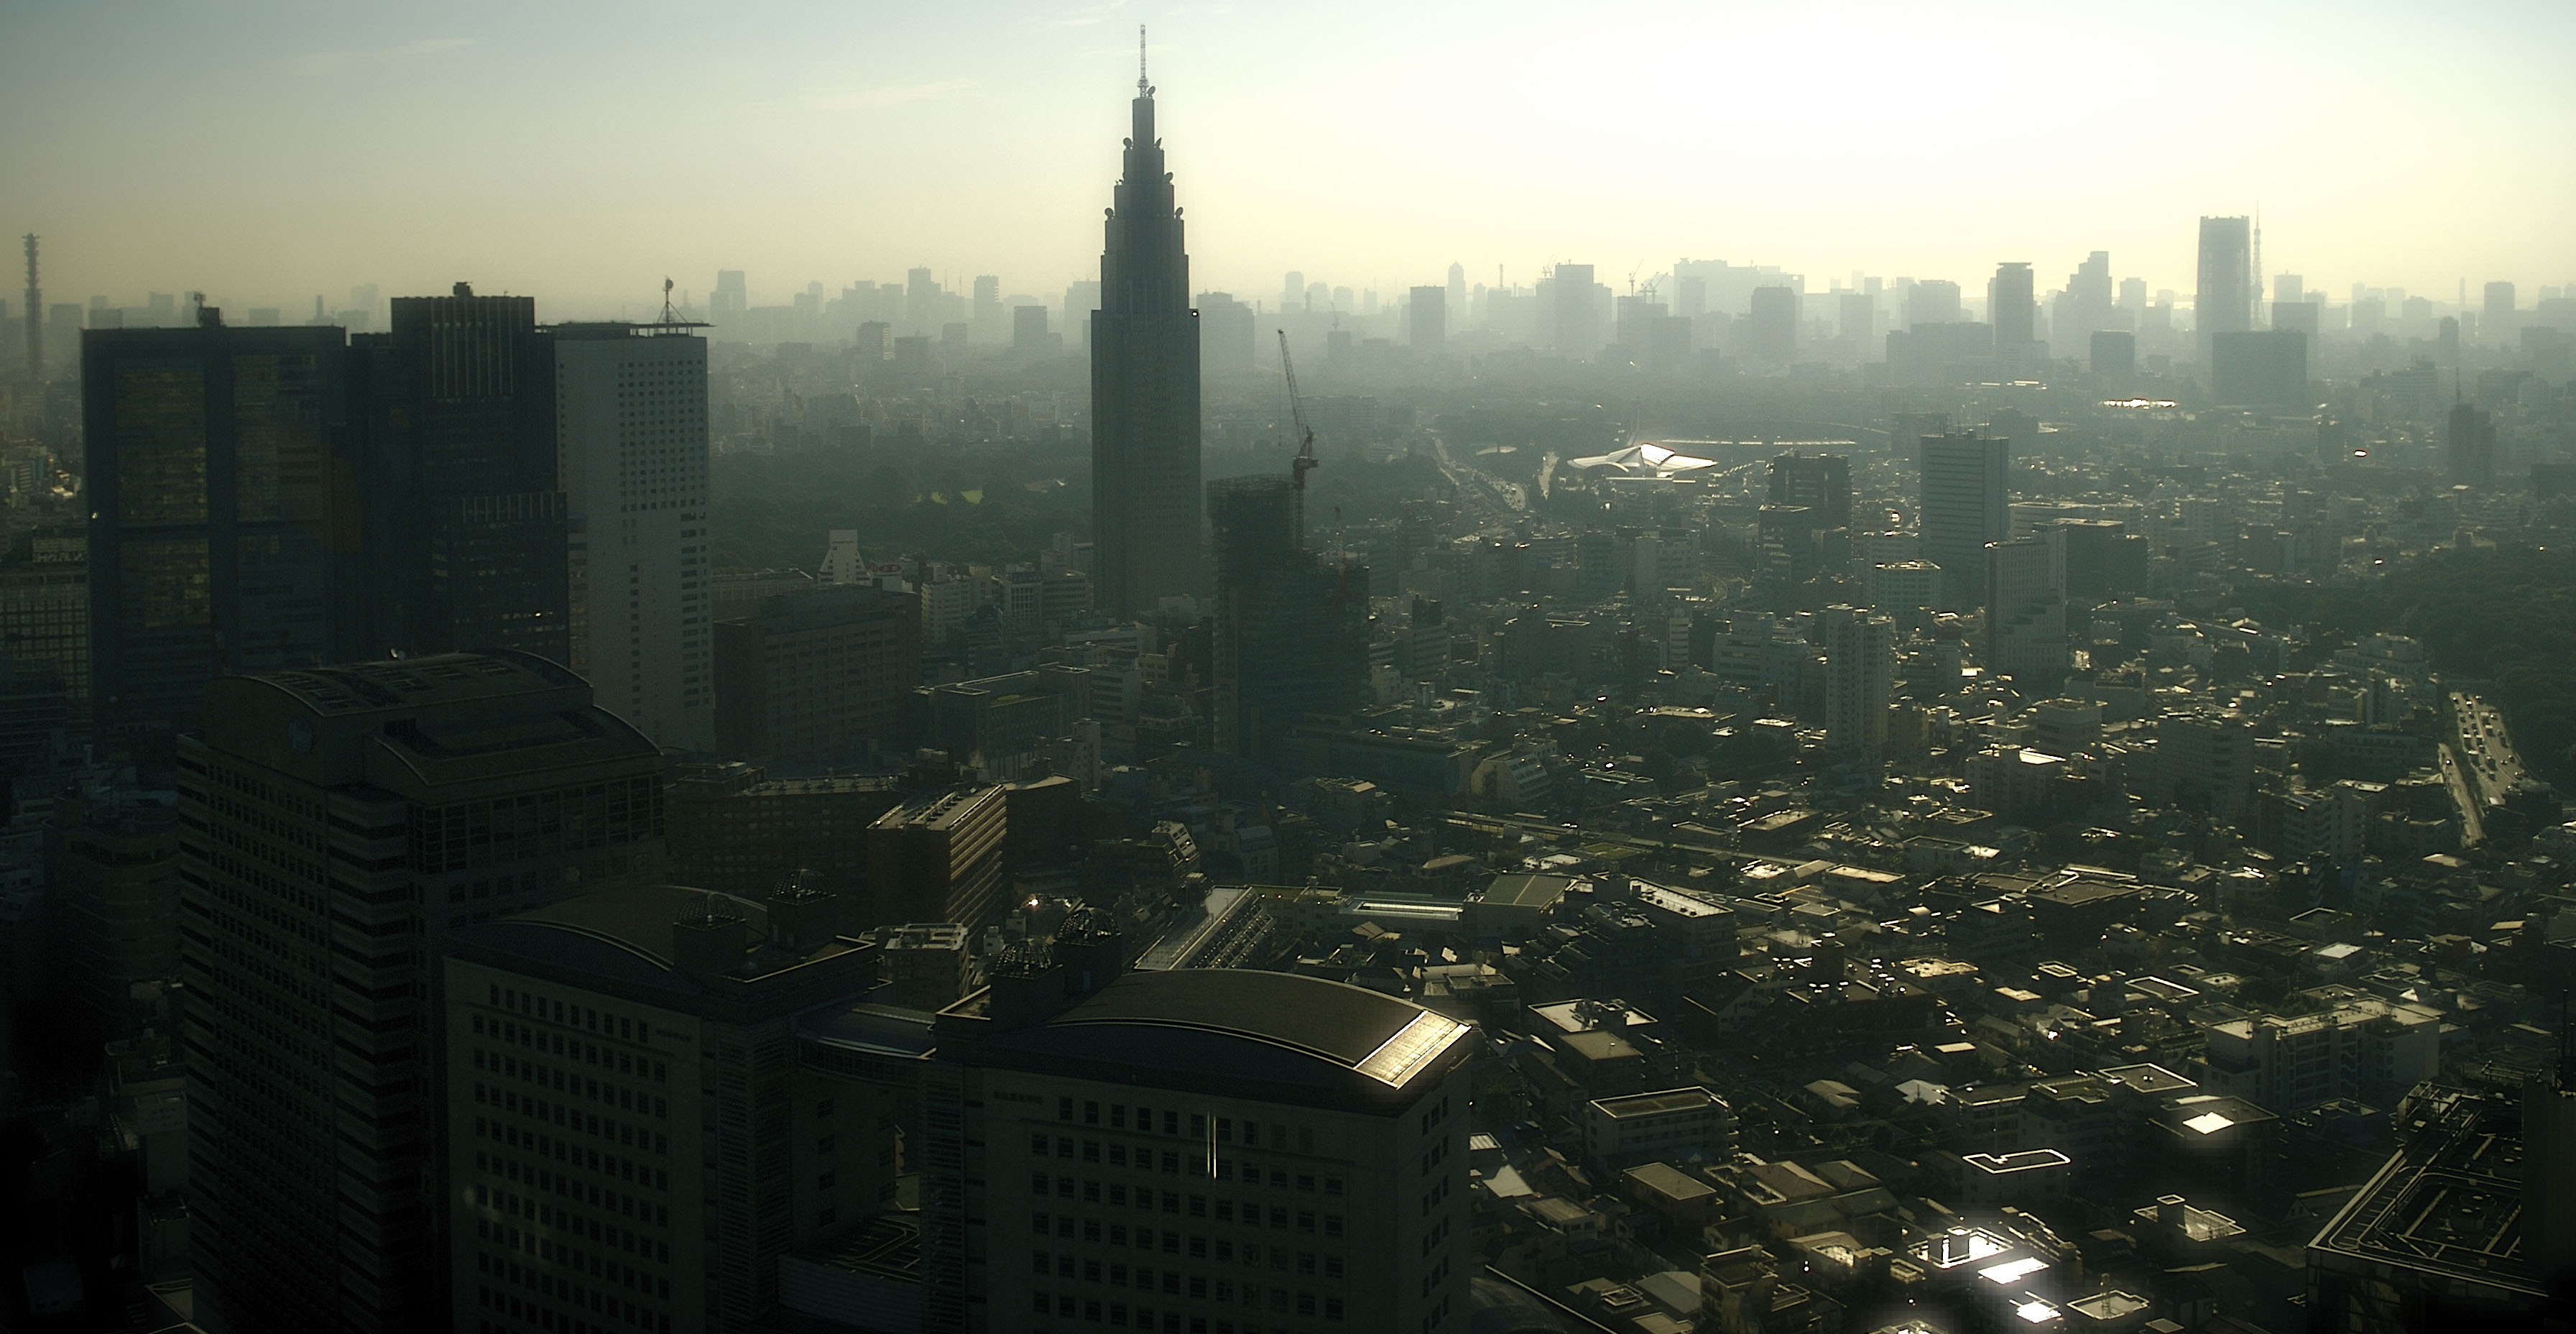 What Is Smog >> File:Shinjuku smog cityscape.jpg - Wikimedia Commons